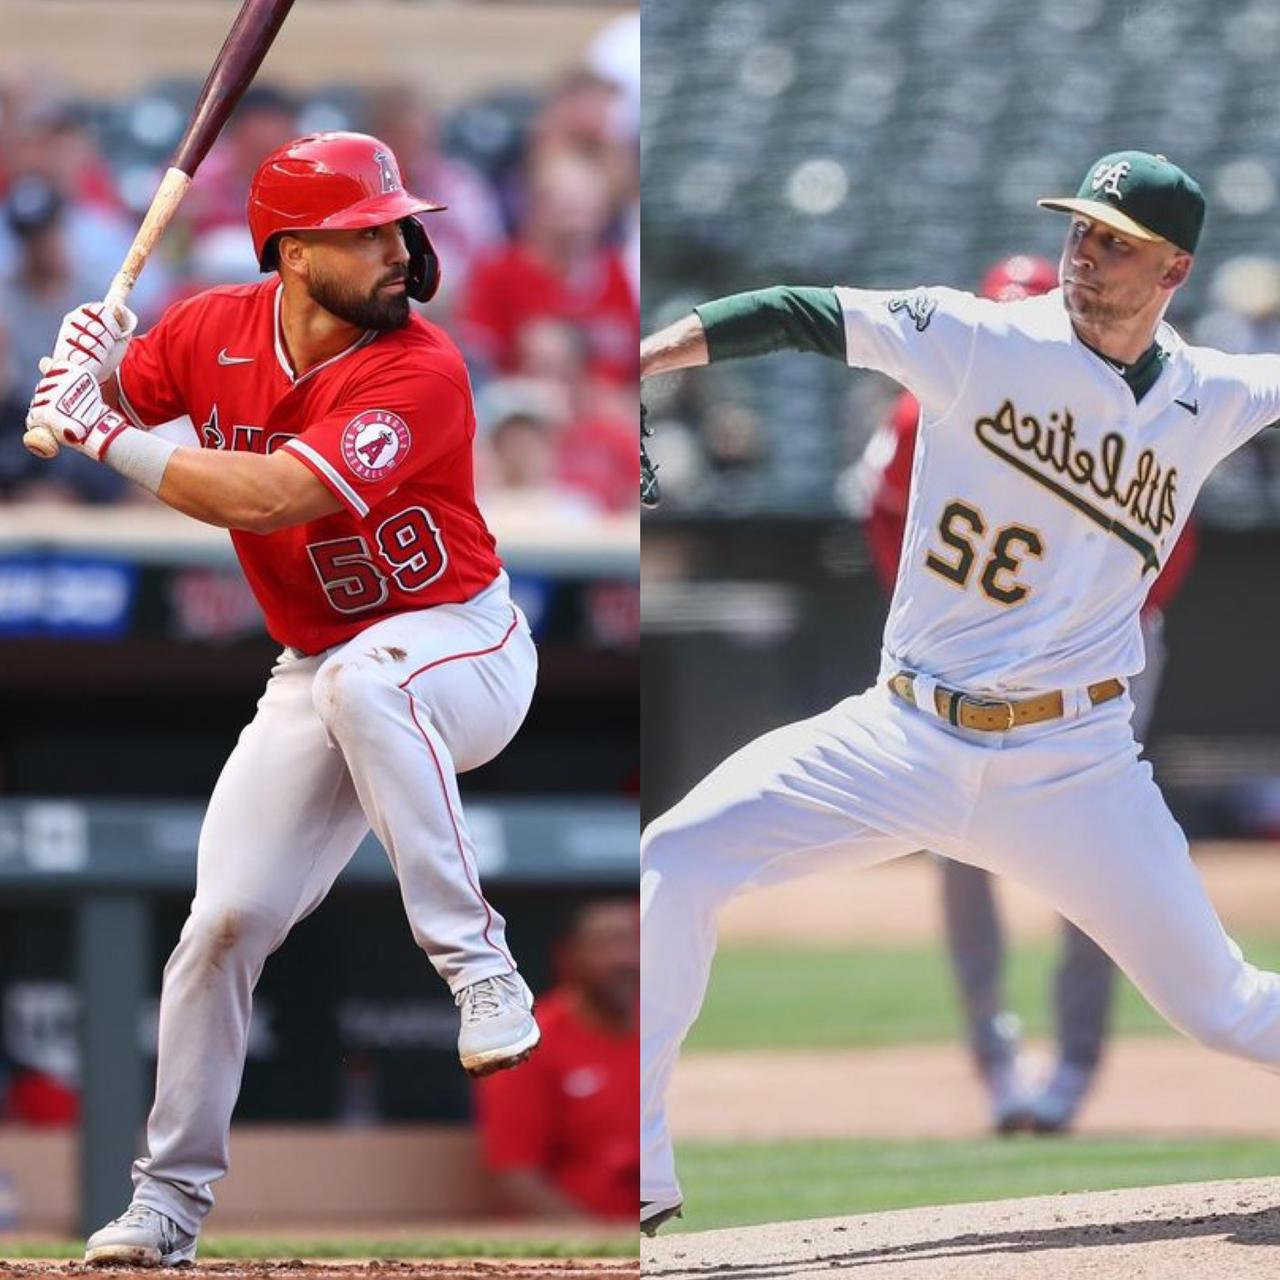 Los Angeles Angels vs Oakland Athletics Prediction And Match Odds